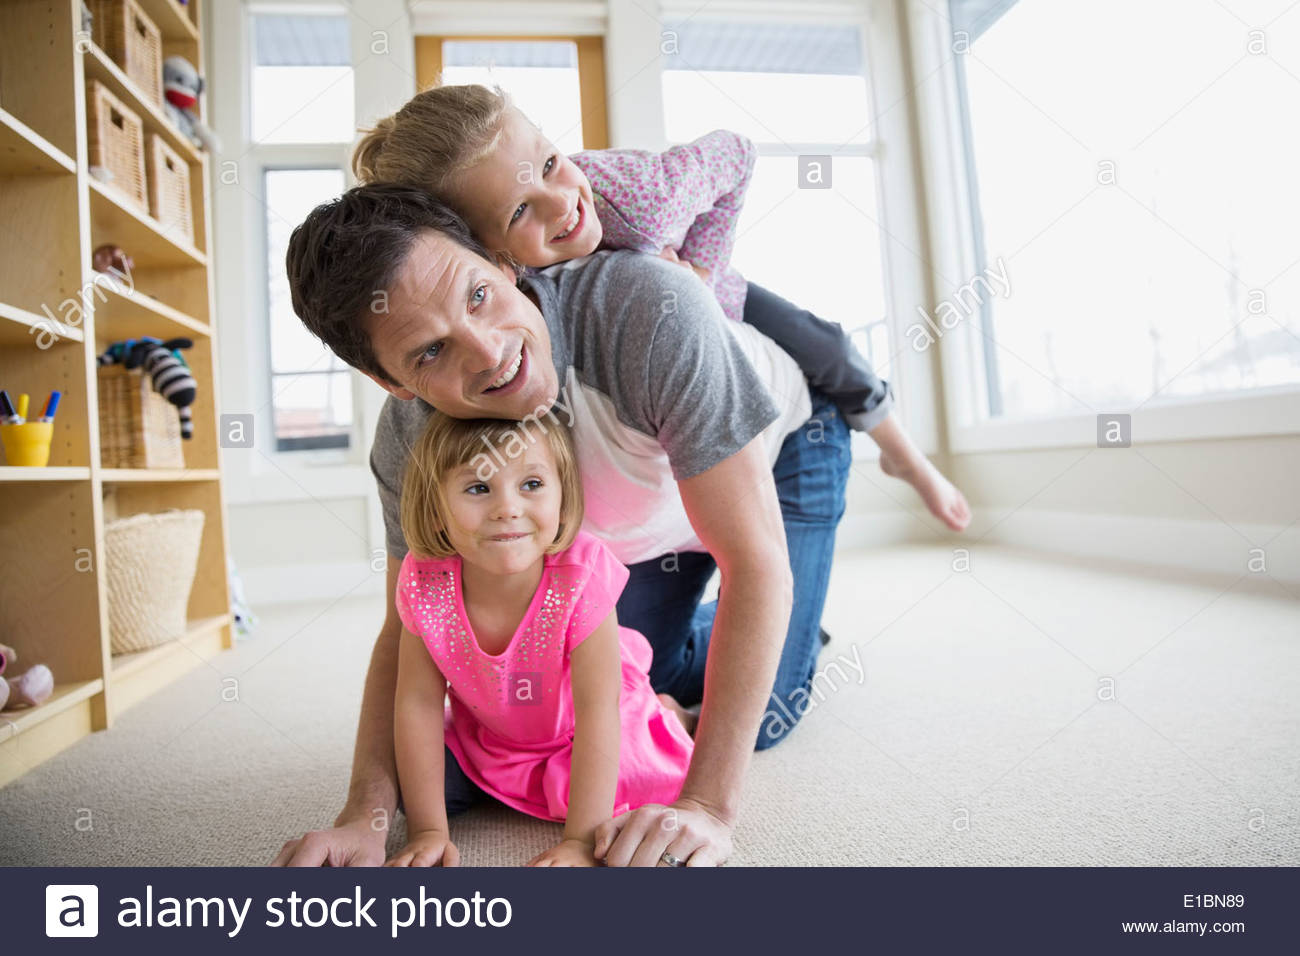 Father and daughters playing in living room - Stock Image